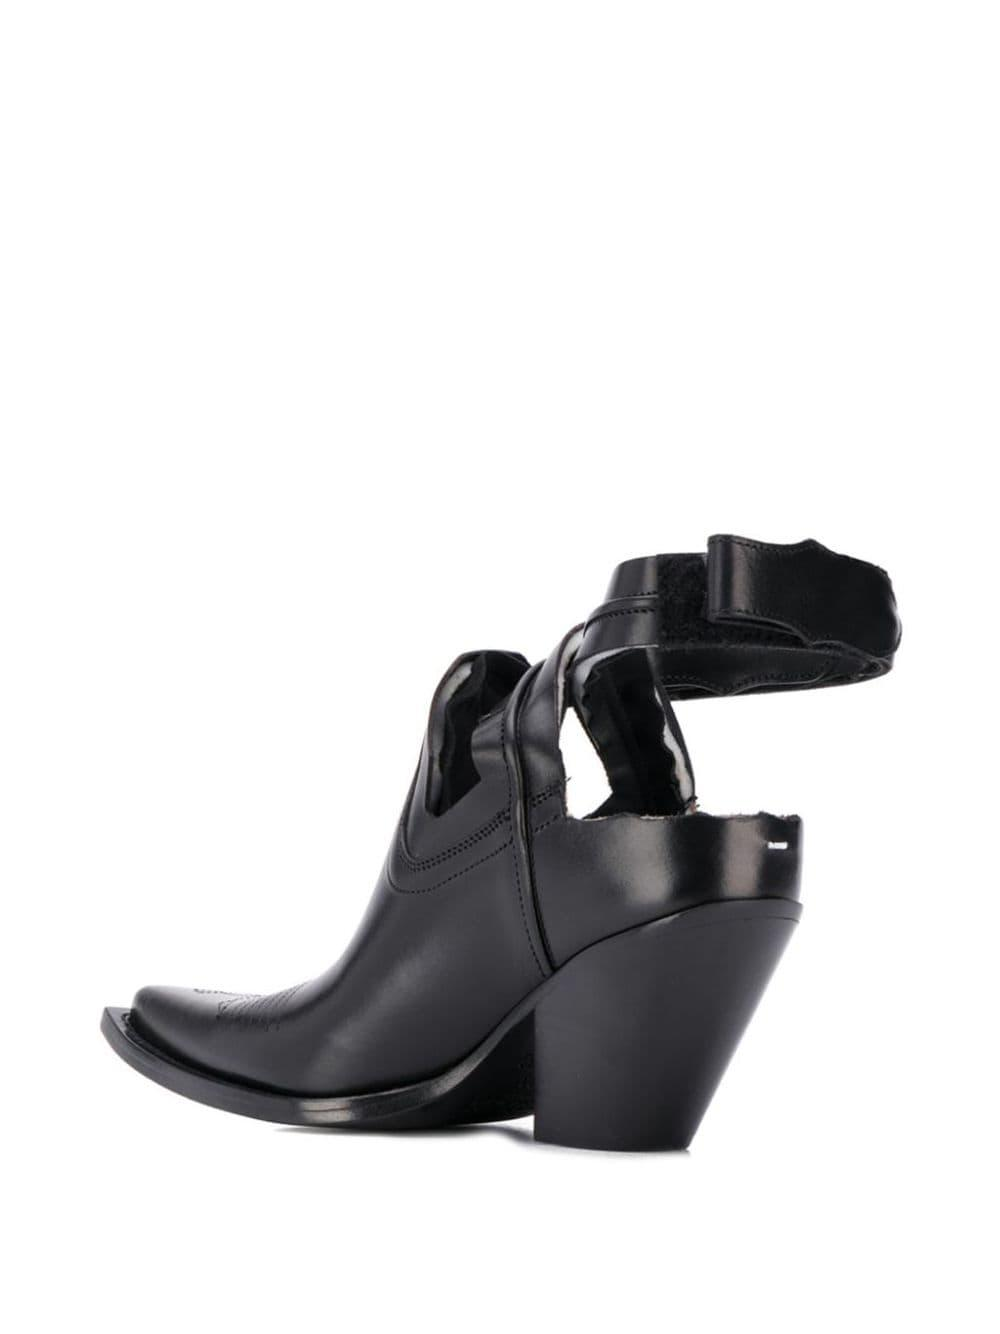 Maison Margiela Leather Texan Cut-out Ankle Boots in Black